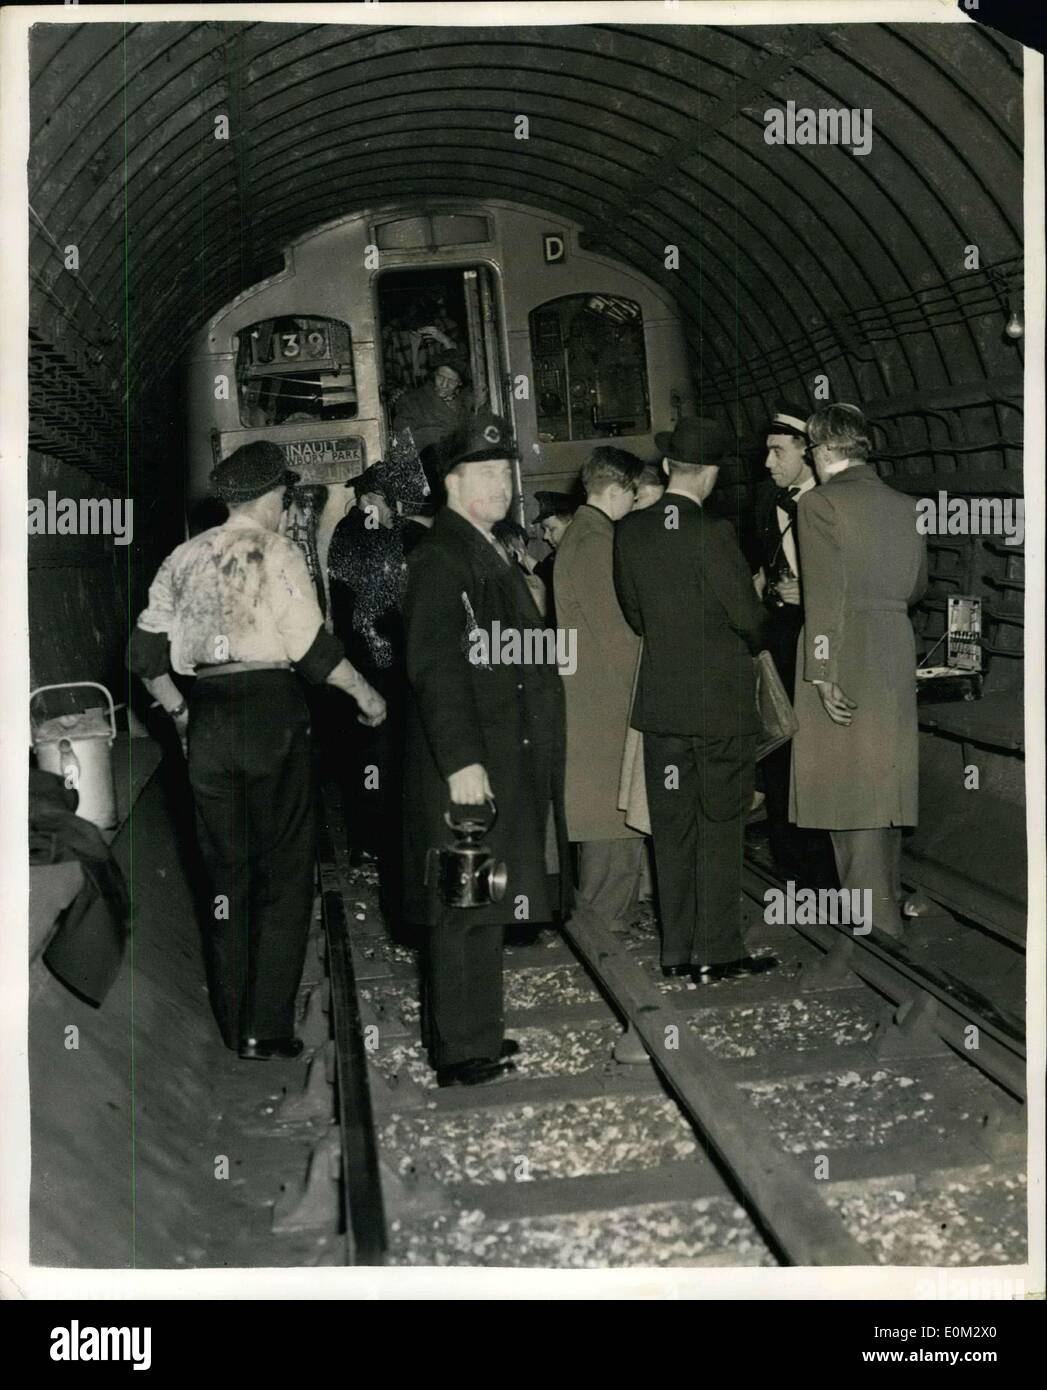 Apr. 09, 1953 - Nine Dead in Tube Disaster - Nine People Were Known Today to Have Died in the Central Line tube disaster at Stret ford last night - the Worst in London's Underground history. It was the second coach of the Esling Broadway-Epping tain which took the brunt of the crash. The Train ten into the rear of another train travelling from Greenford to Hainaule. keystone Photo Shows:- Last Night's Scene as Railway officials help passengers from the rear of one of the coaches after the crash at Stree ford - Stock Image